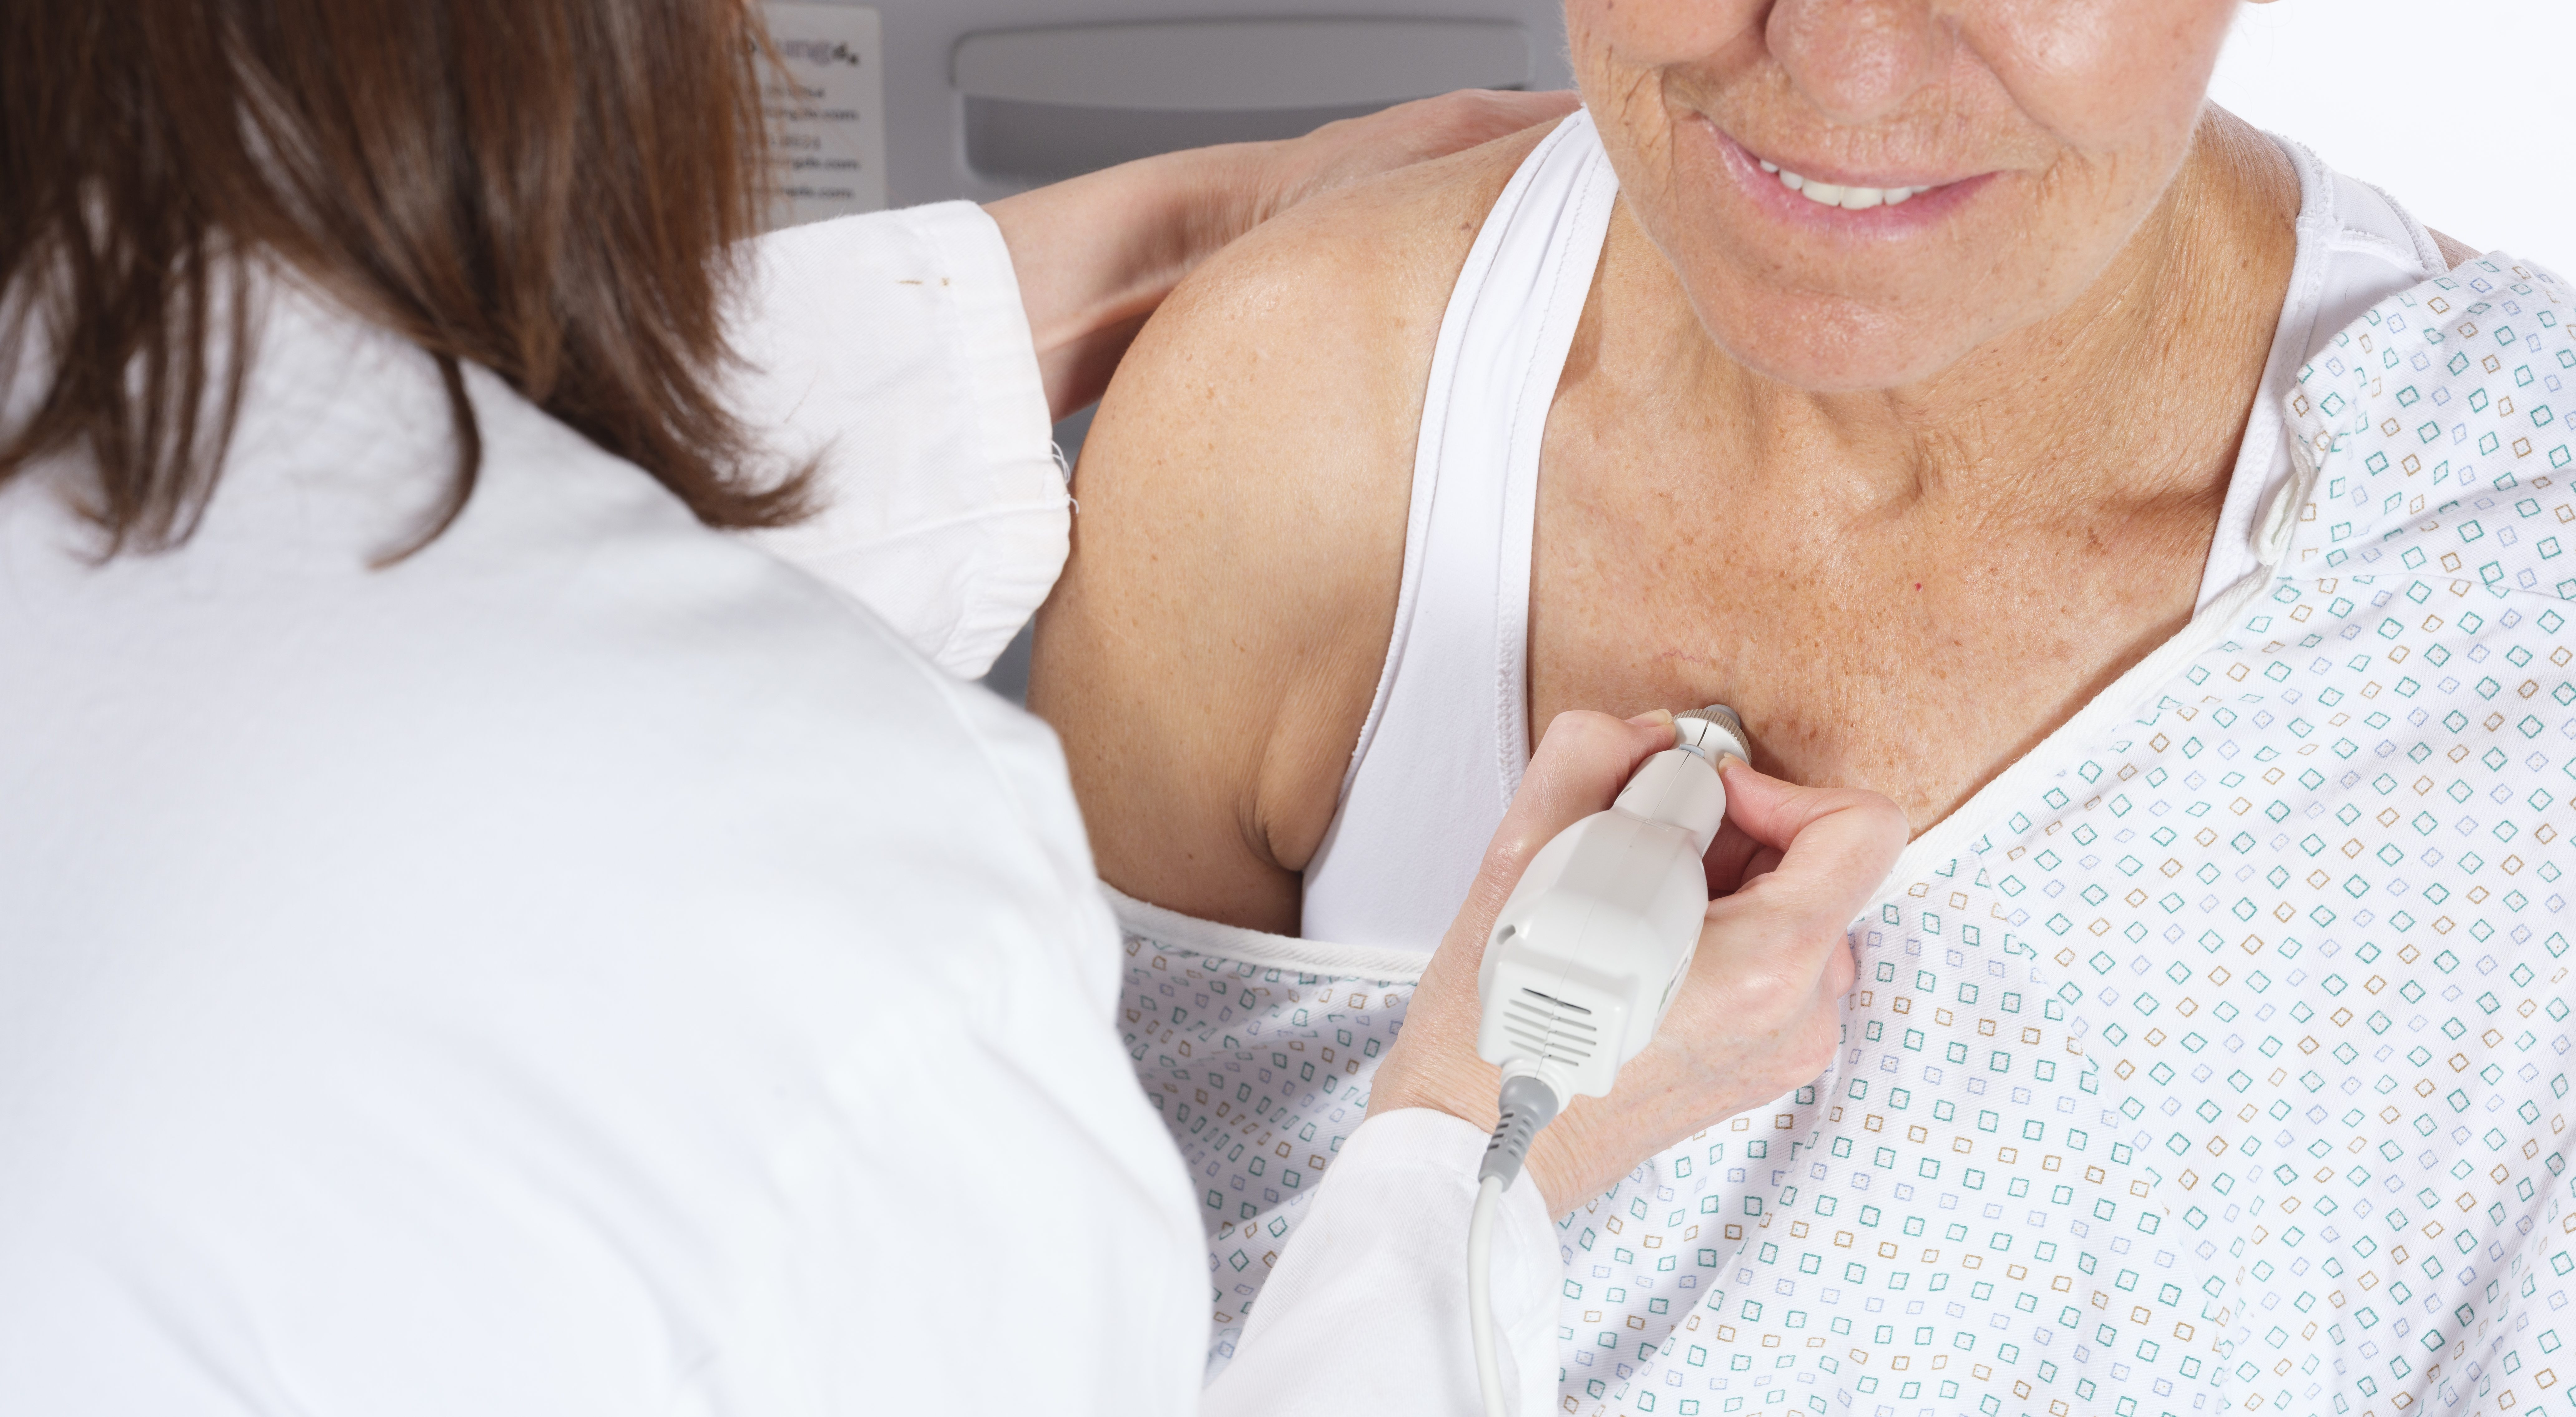 ProLung Test, a predictive analytic technology for rapid risk stratification of lung cancer, being used by a technician to perform test on a patient.